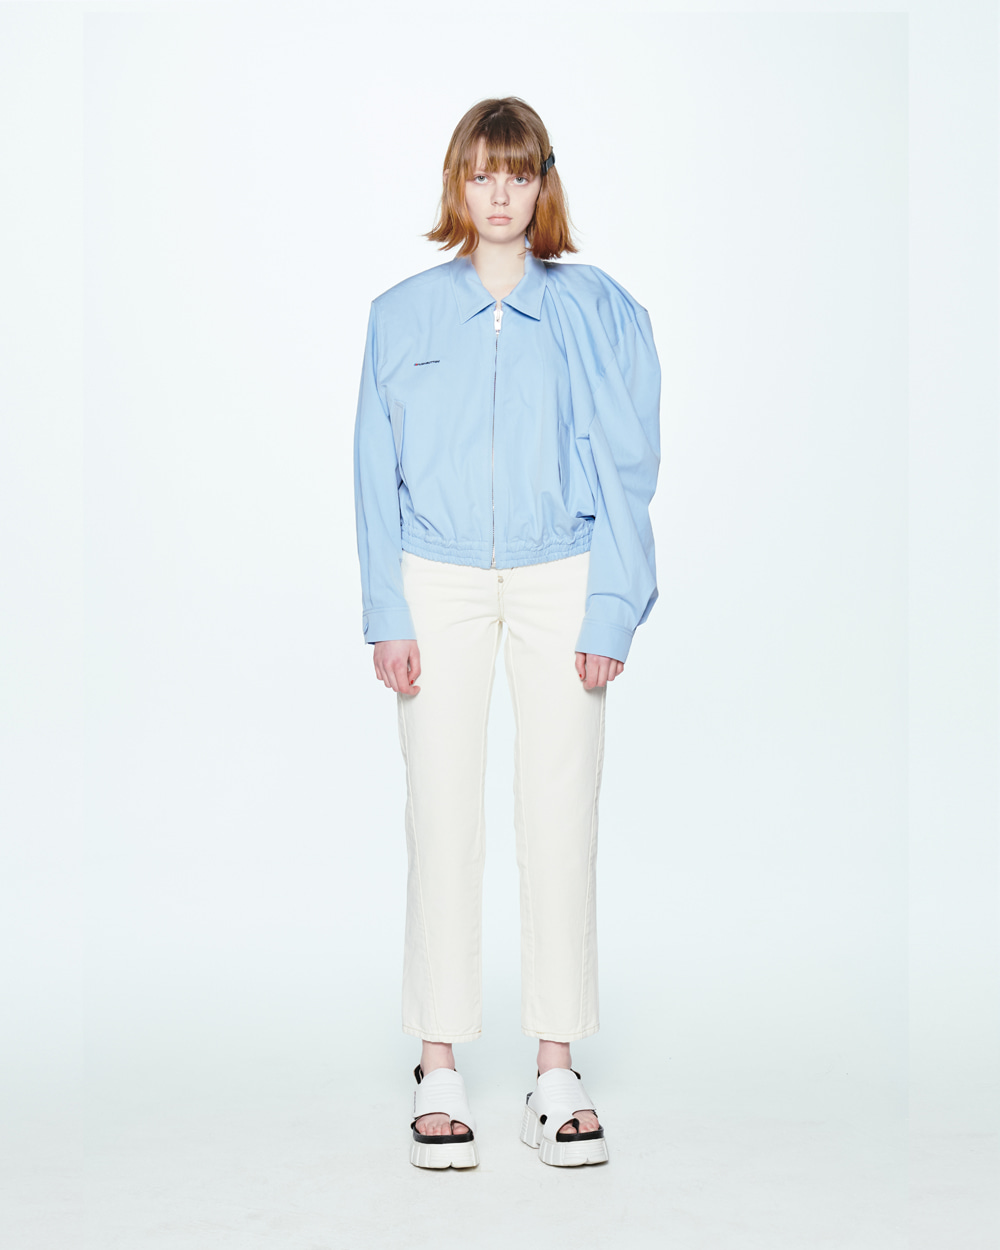 SS20 BACK-UP IVORY JEANS